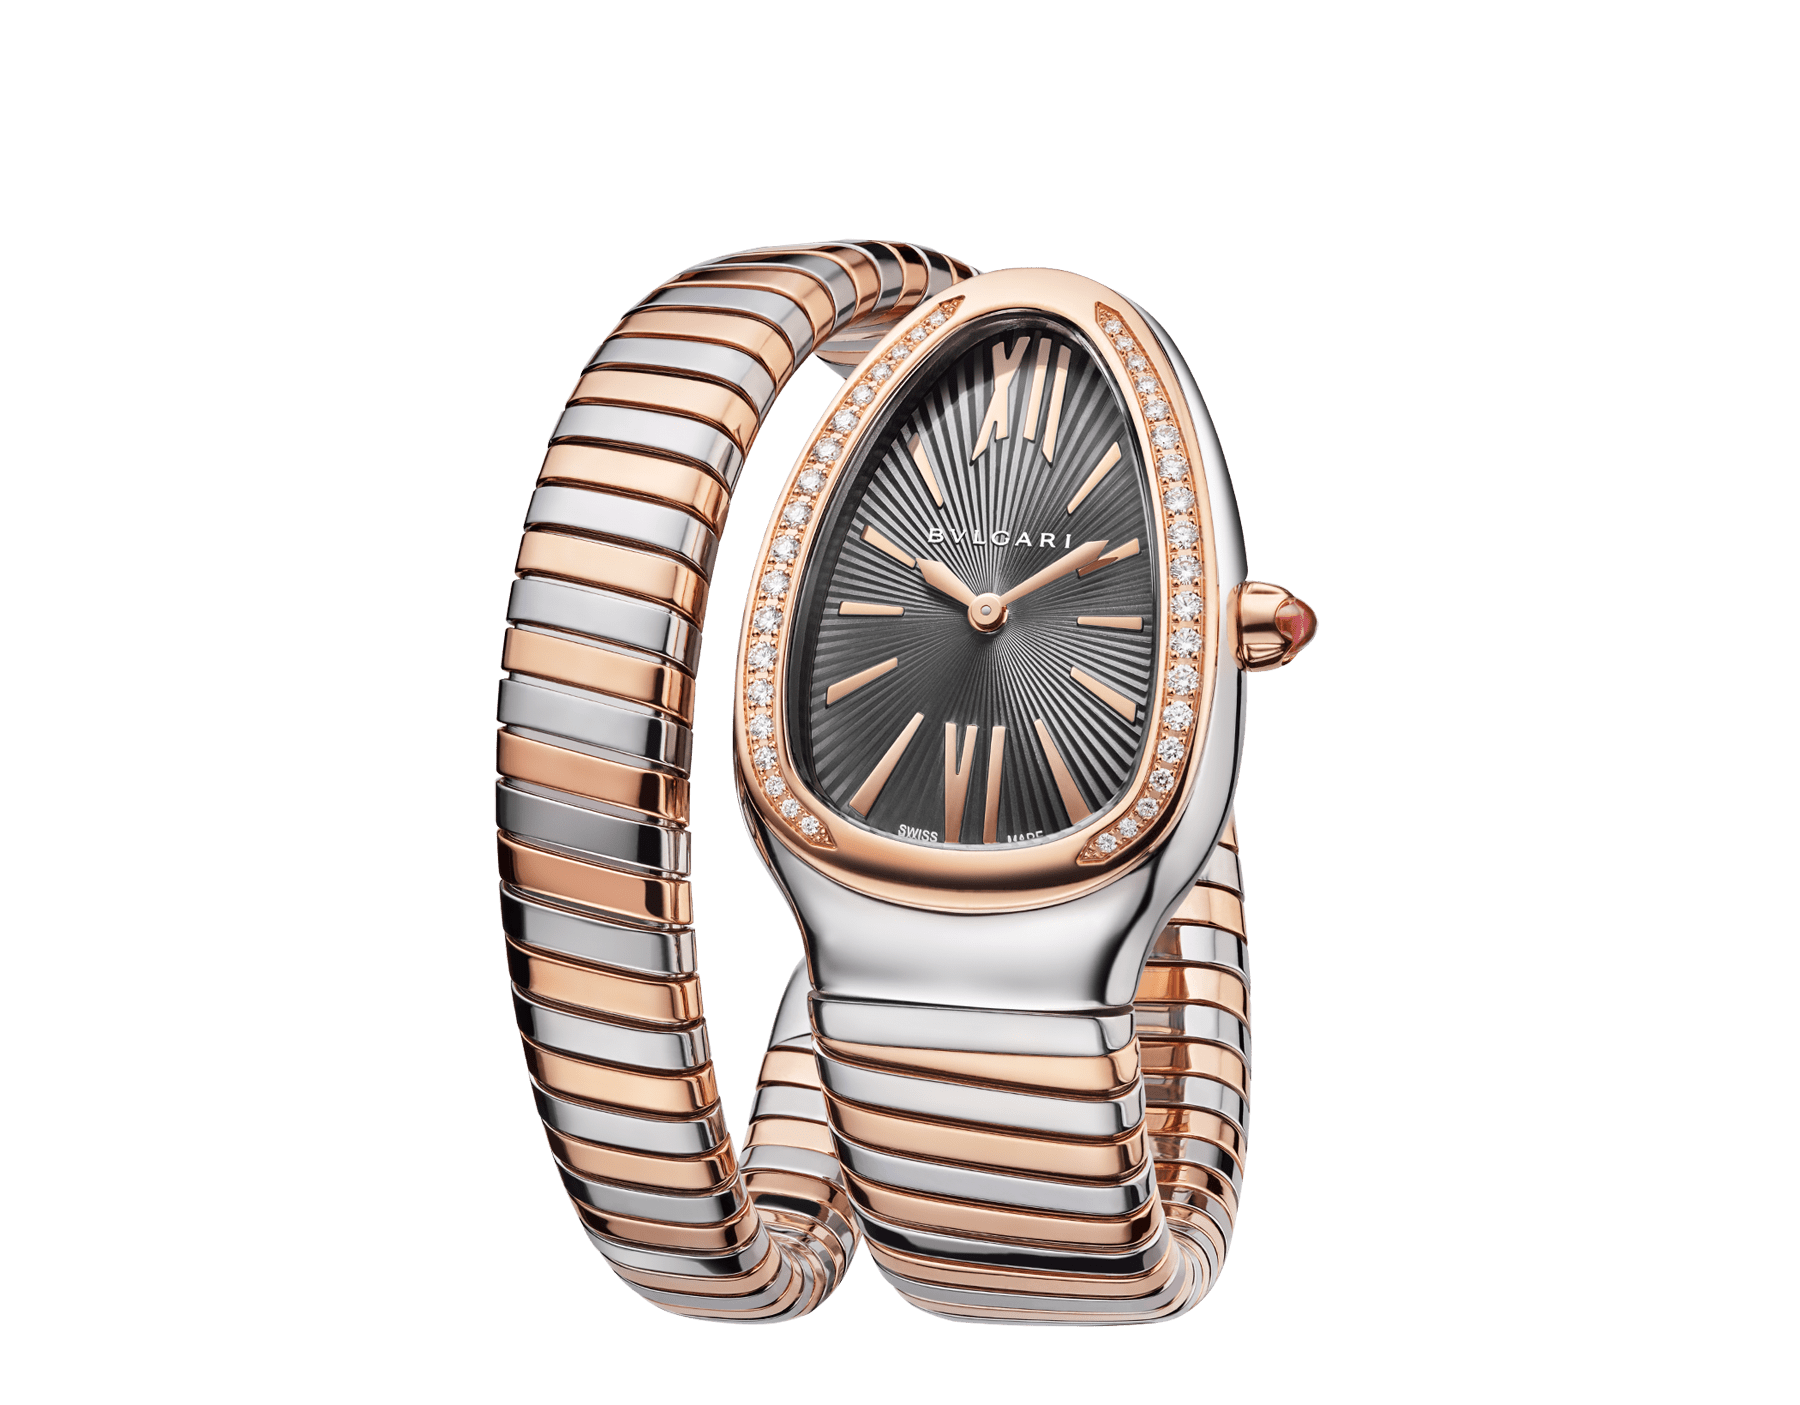 Serpenti Tubogas single spiral watch with stainless steel case, 18 kt rose gold bezel set with brilliant cut diamonds, grey lacquered dial, 18 kt rose gold and stainless steel bracelet. 102681 image 2